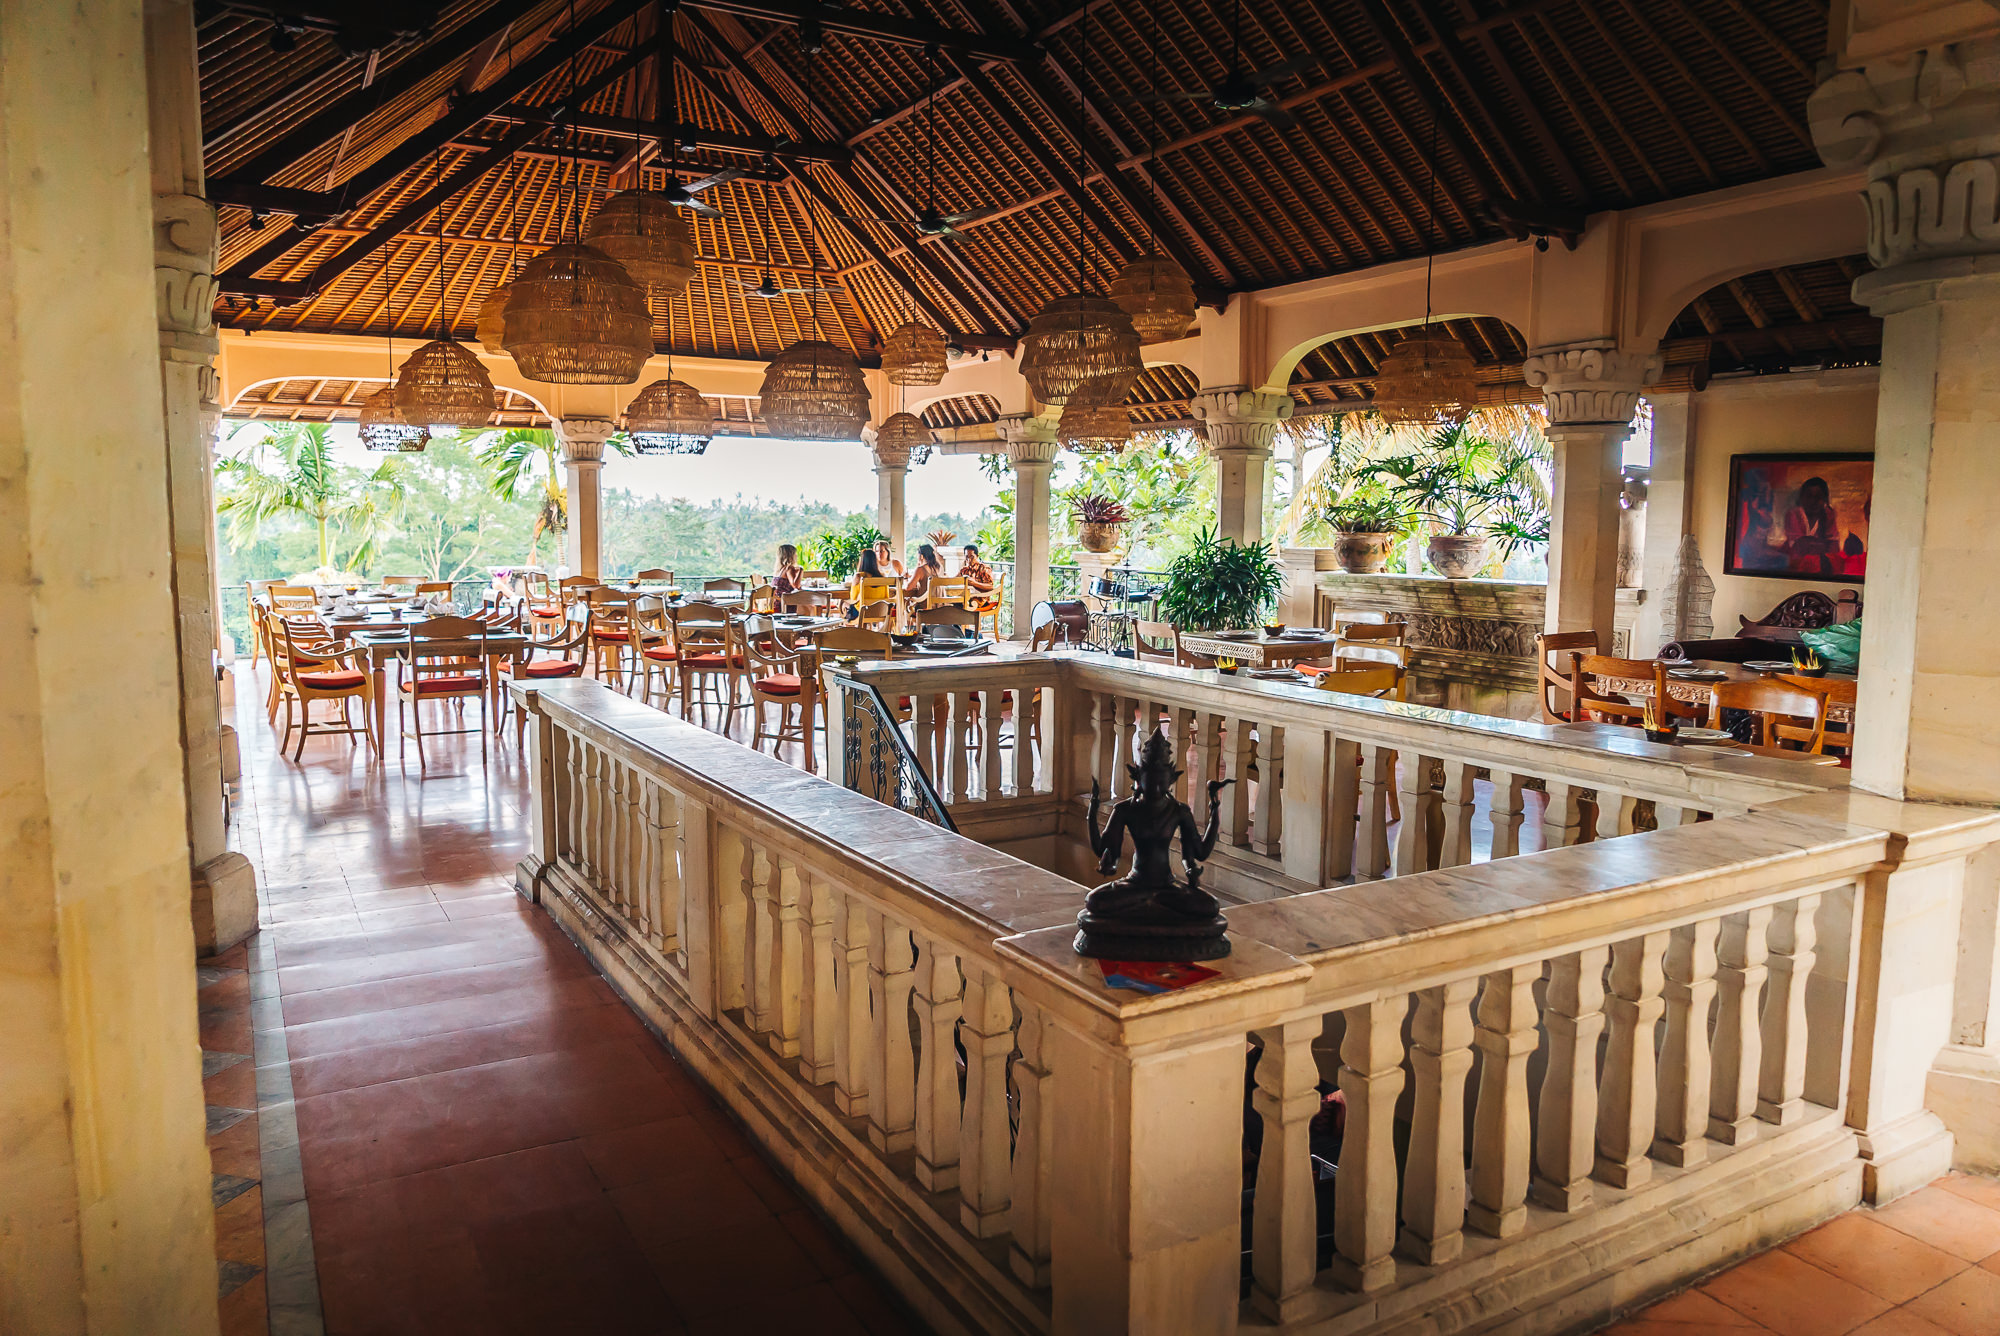 Beautiful restaurants everywhere in Ubud